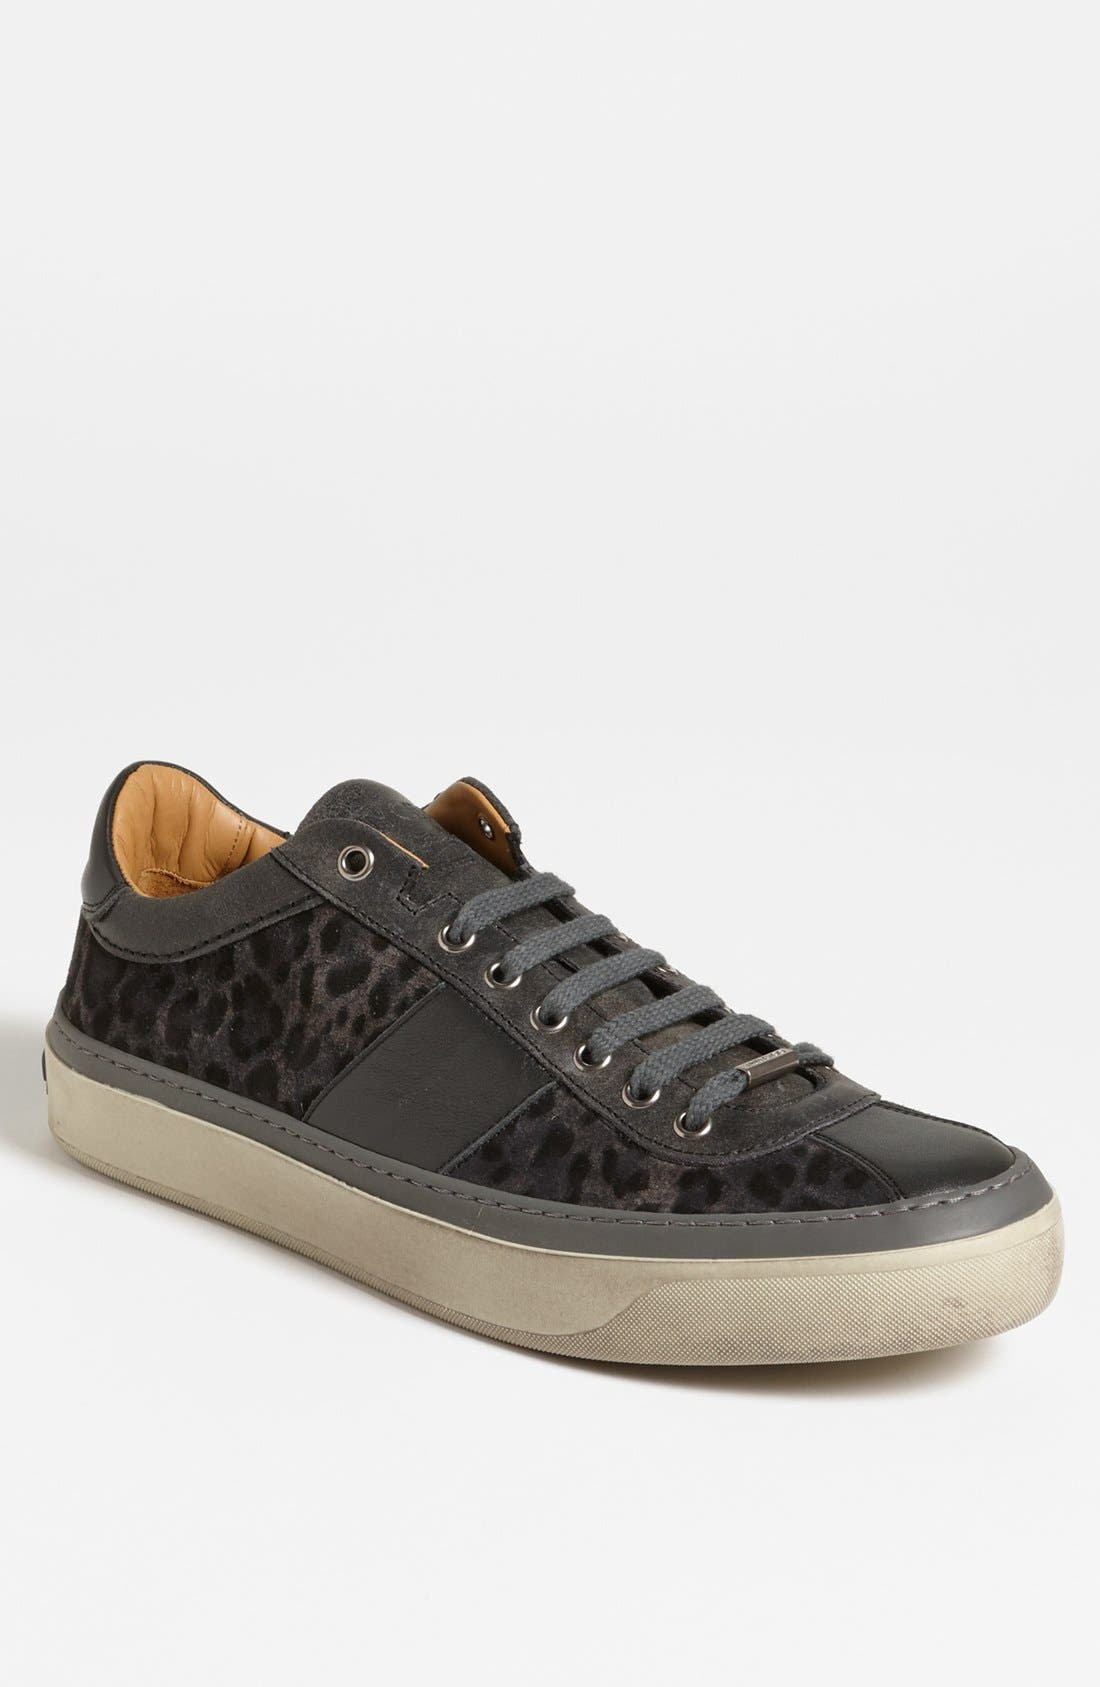 Alternate Image 1 Selected - Jimmy Choo 'Portman' Sneaker